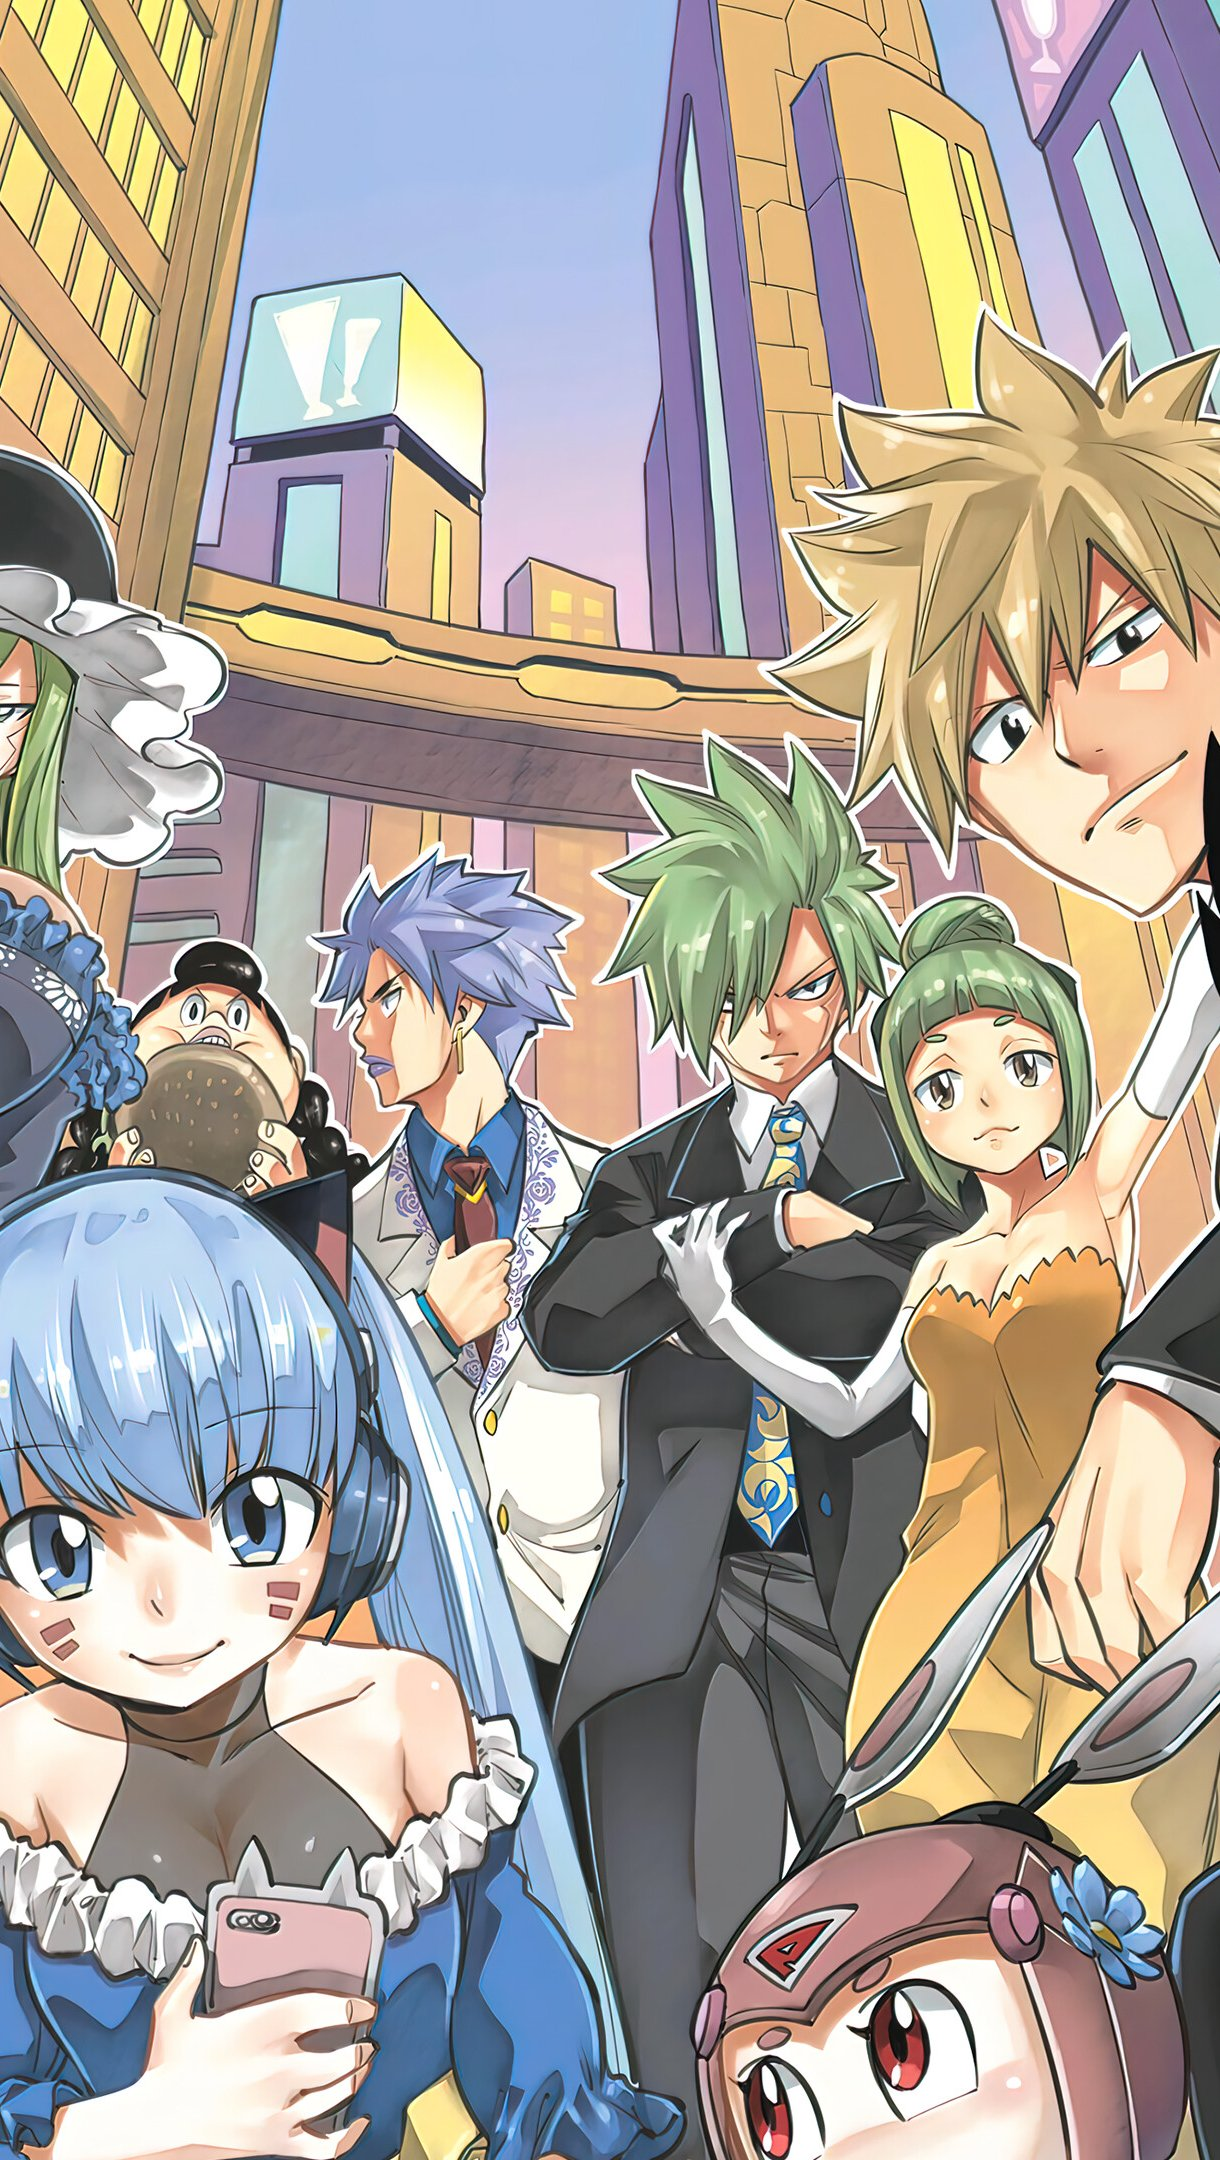 Anime Wallpaper All Characters from Edens Zero Vertical